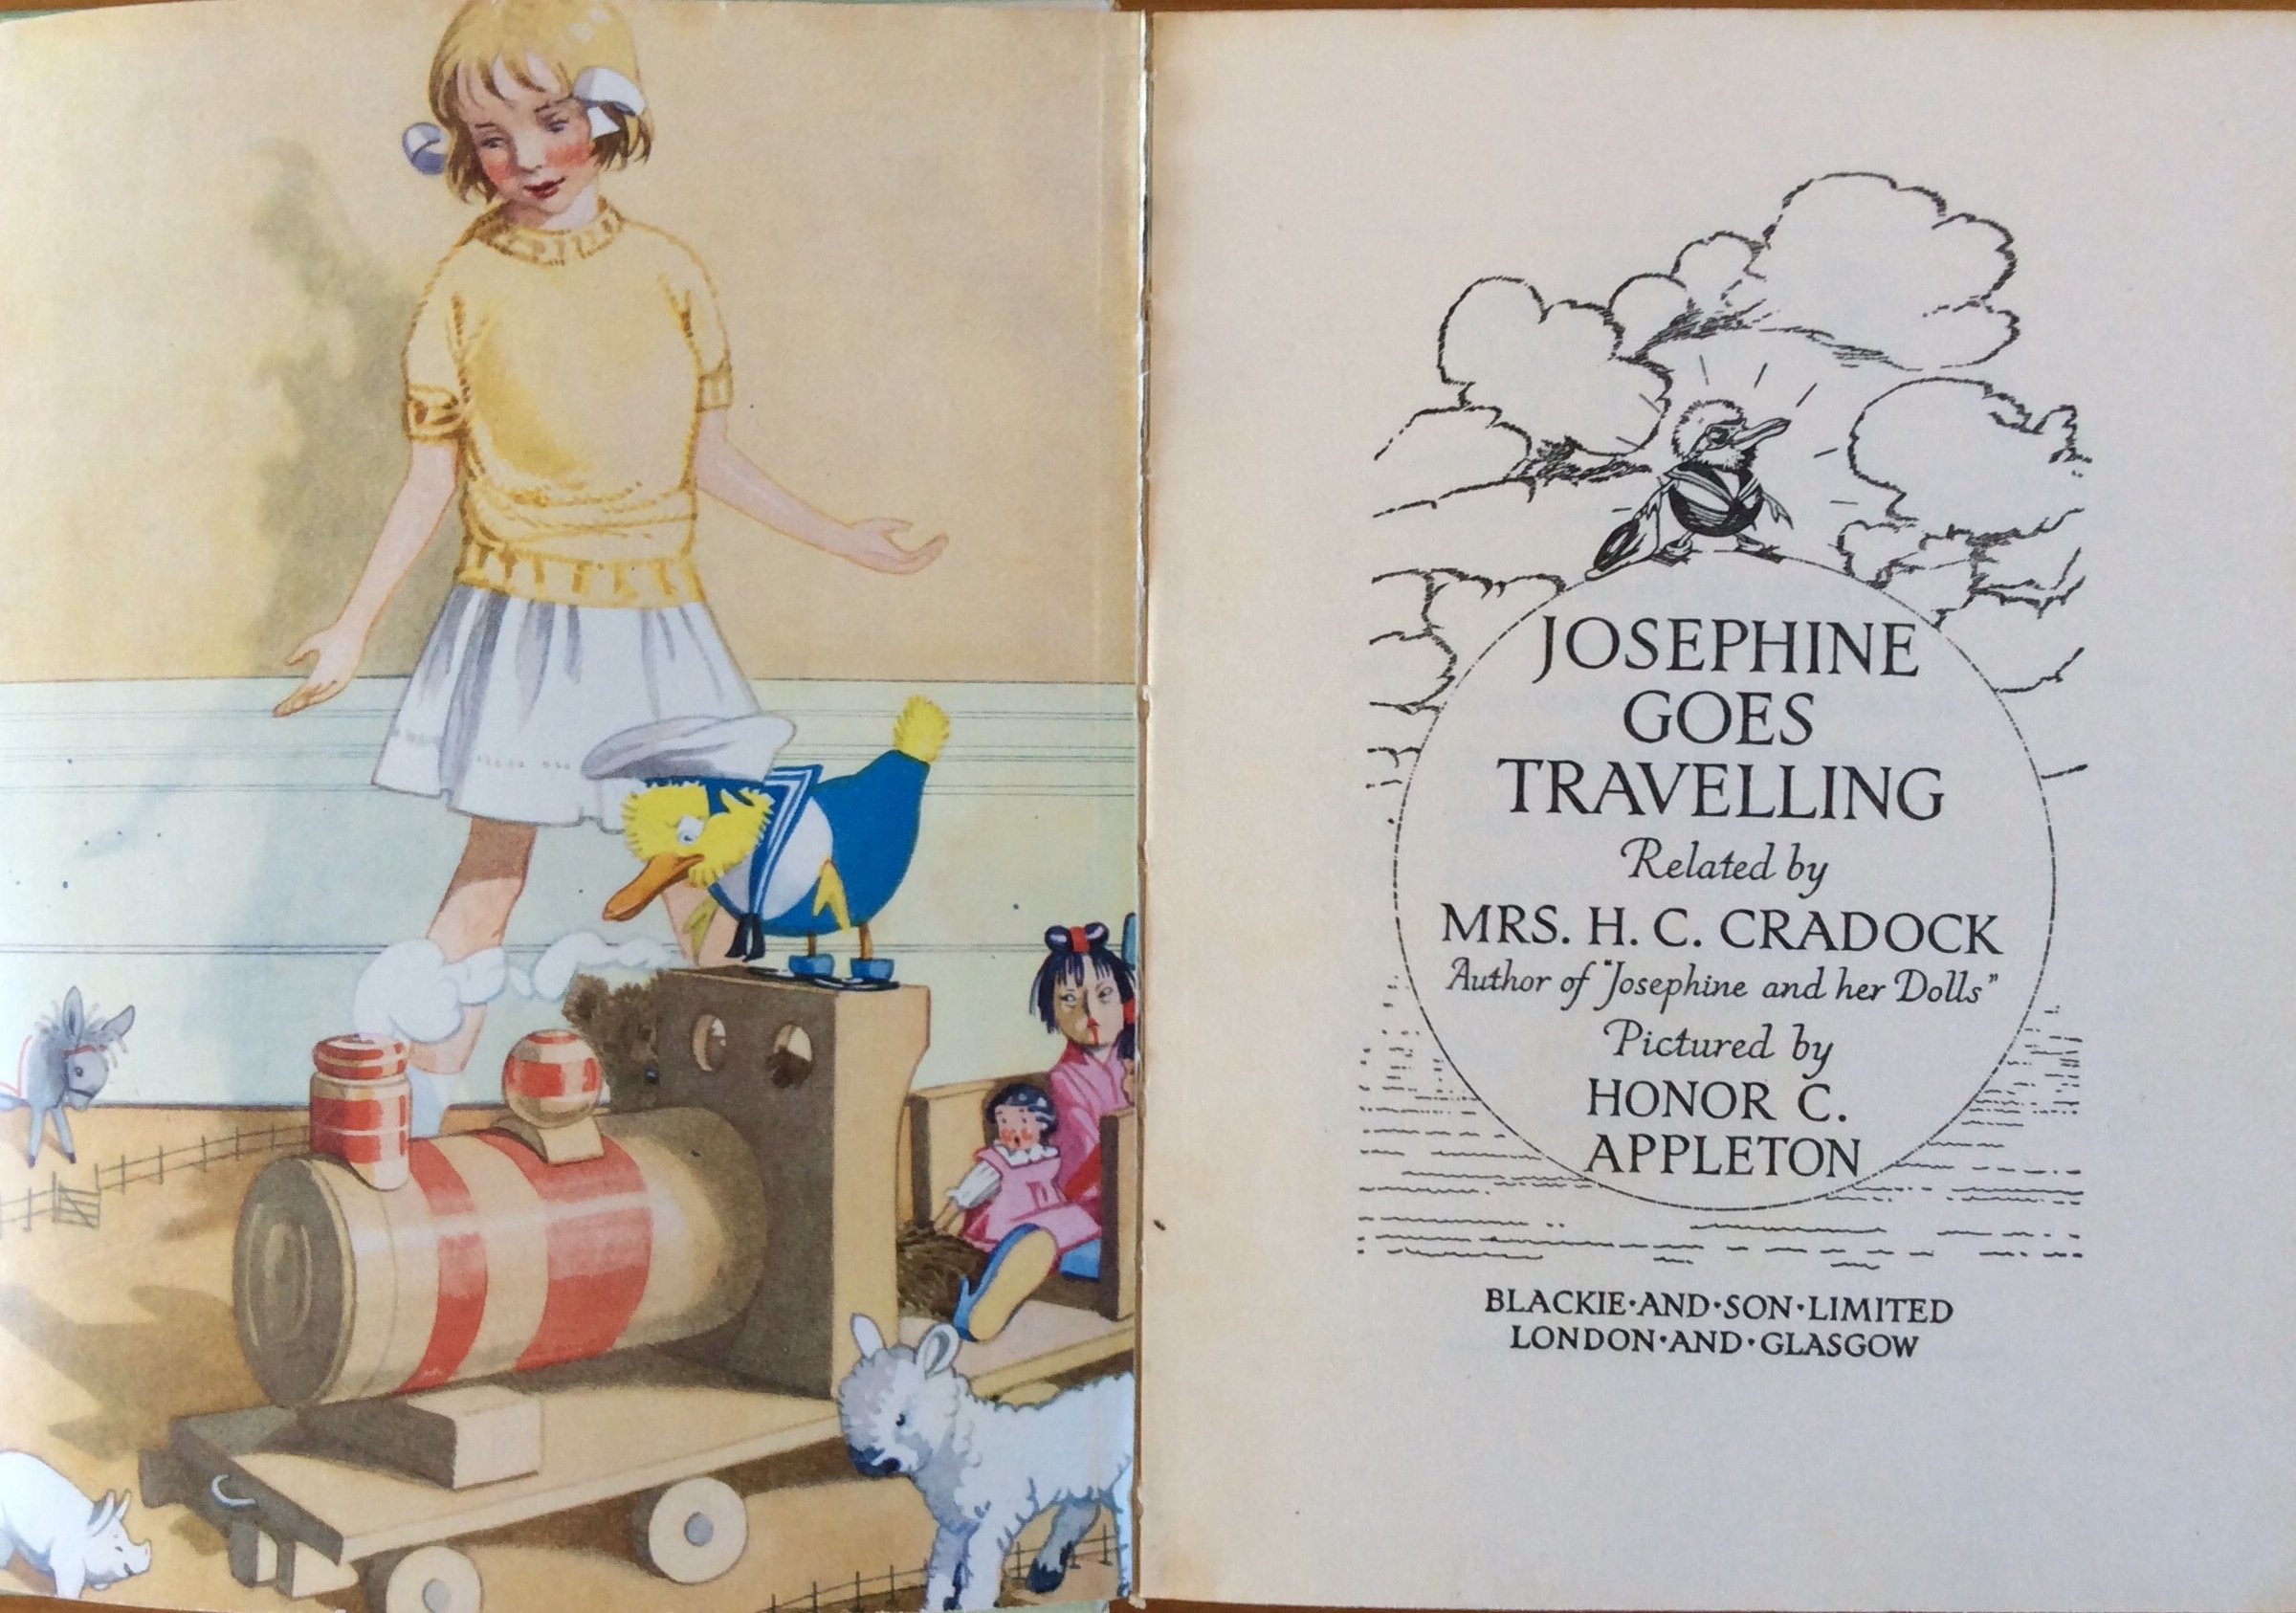 Josephine Goes Travelling, di Mrs. H.C. Cradock, illustrato da Honor C. Appleton - Blackie and Son Limited